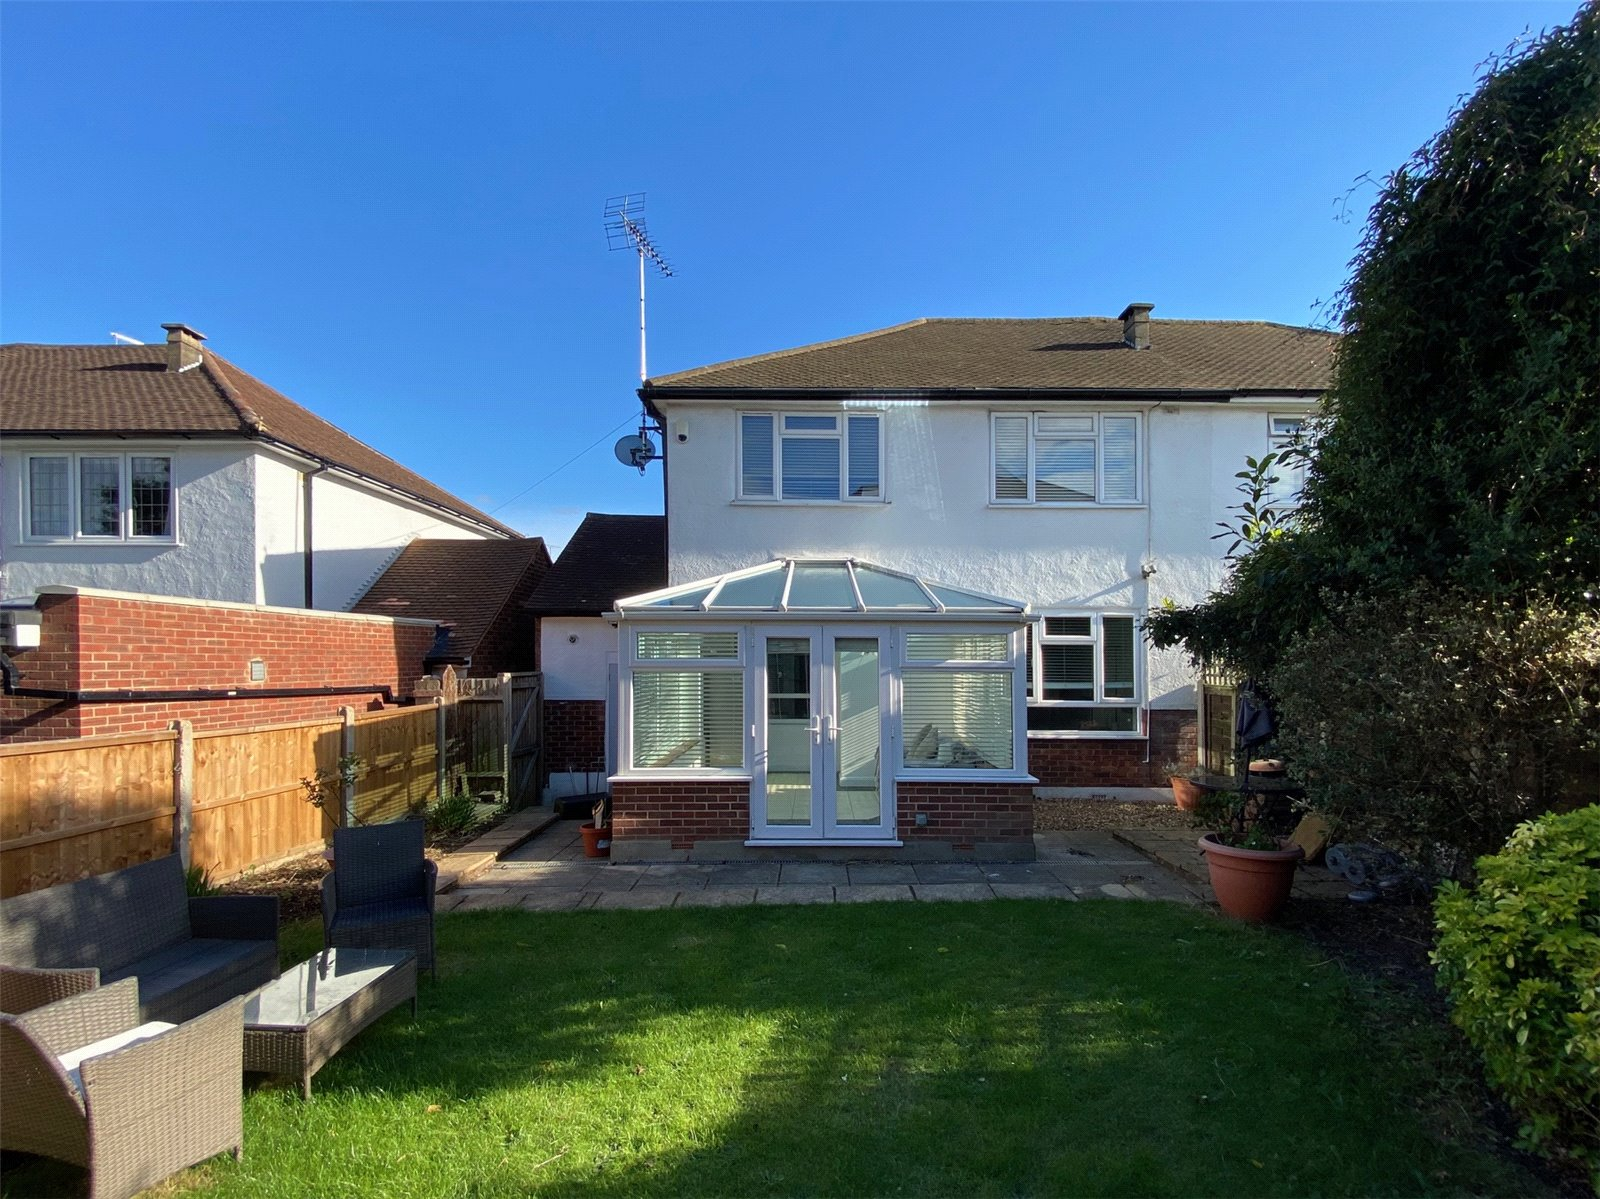 3 bed house for sale in High Barnet, EN5 1AL 8